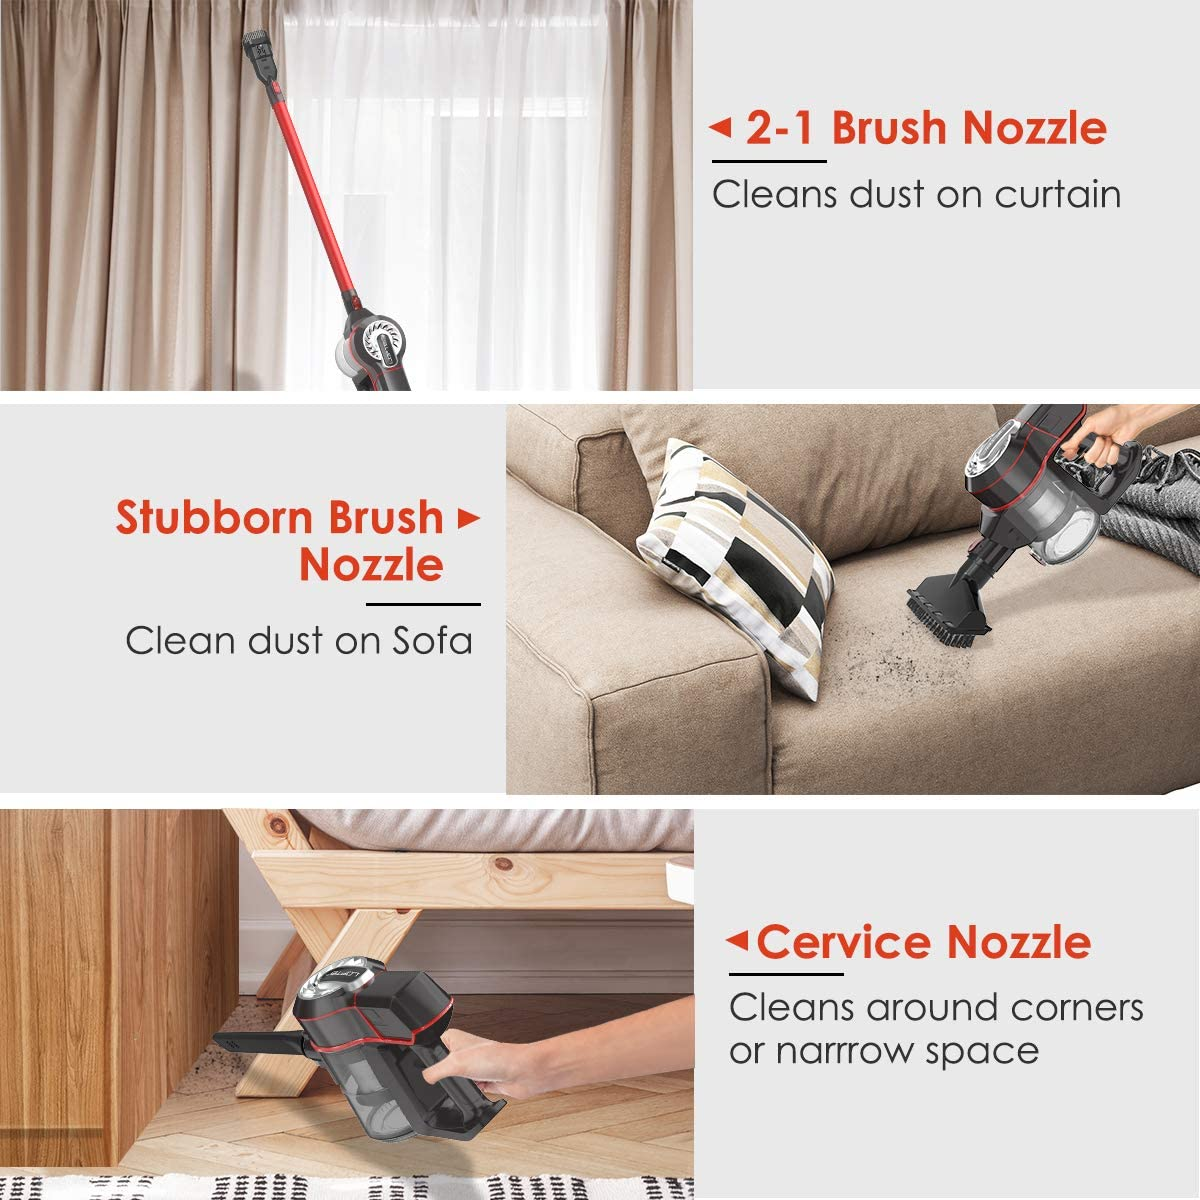 Cordless Vacuum Cleaner LOFTER 4 in 1 Powerful Suction Stick Vacuum Cleaner 150W 2200mAh Handheld Vacuum Cleaner for Clean Home Hard Floor Carpet Curtain Sofa Bed Car Pet Hair with Multi-attachments